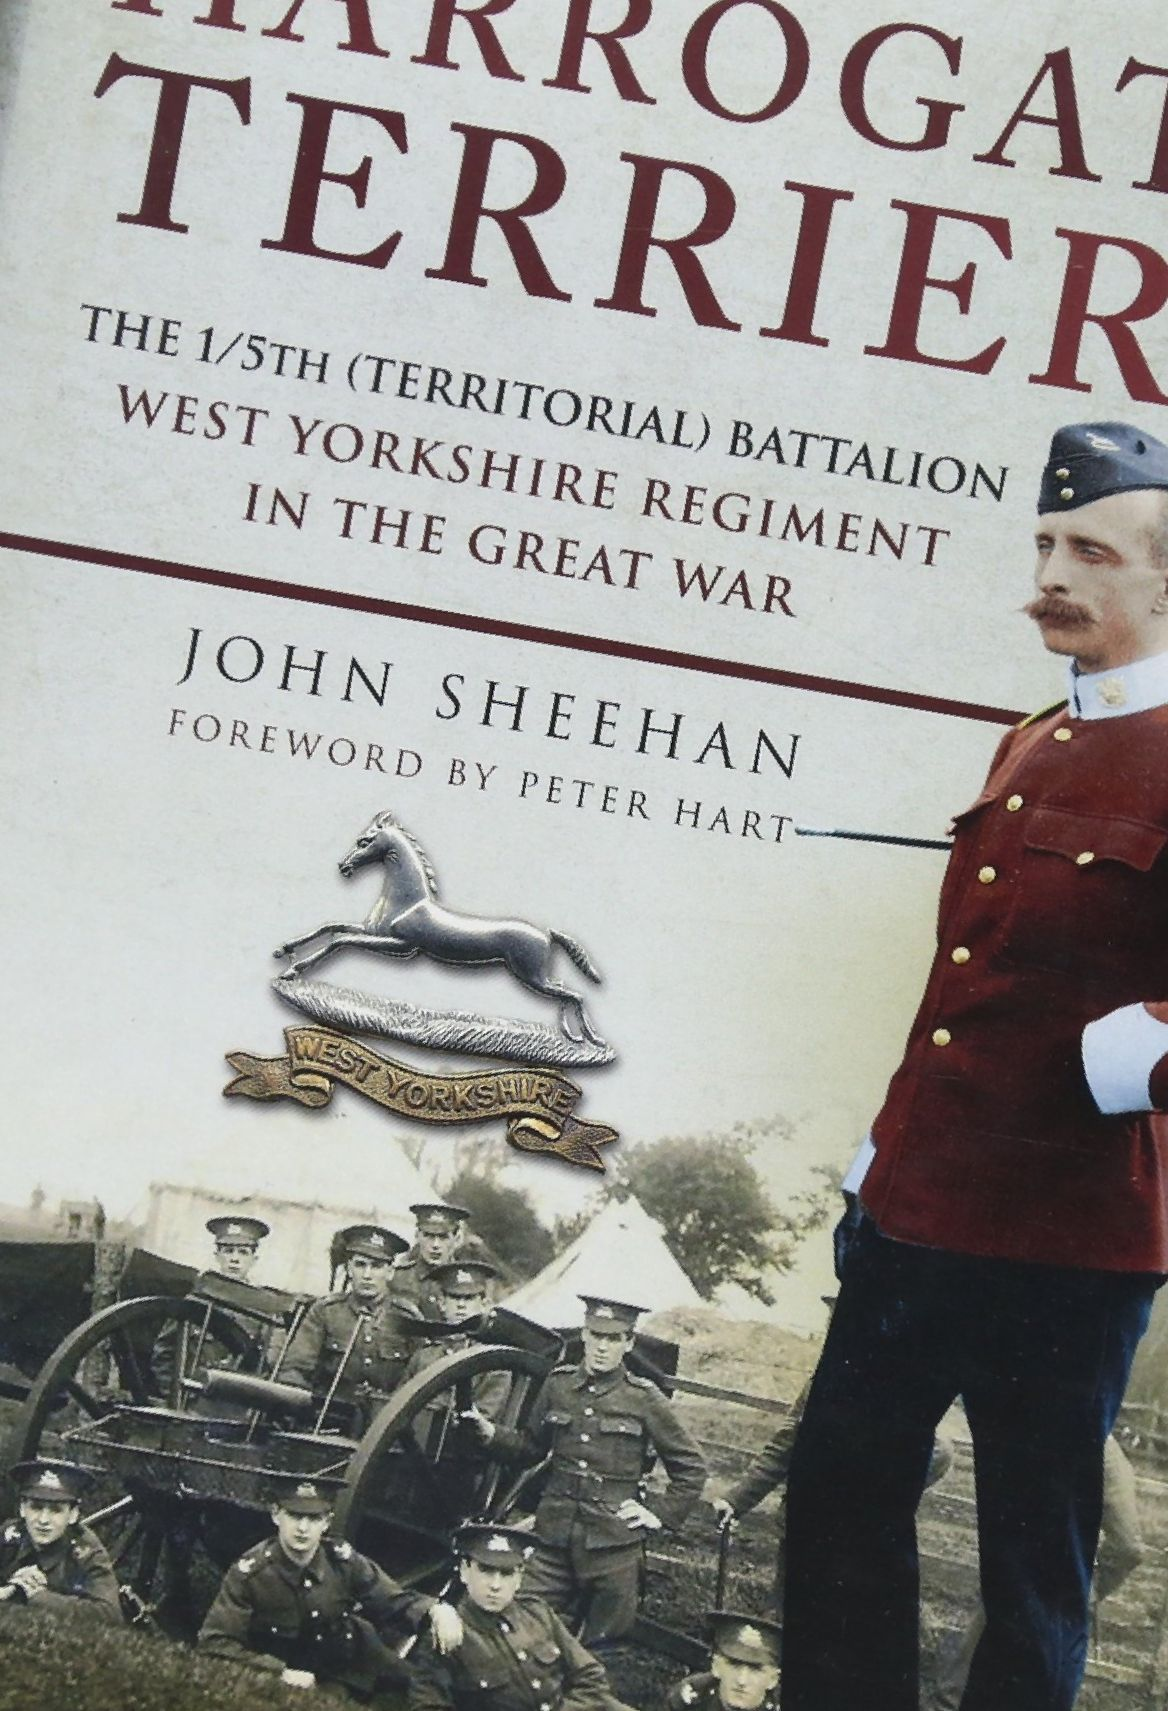 "Book Review: ""The Harrogate Terriers"" – The 1/5th (Territorial) Battalion West Yorkshire Regiment in the Great War, written by John Sheehan."